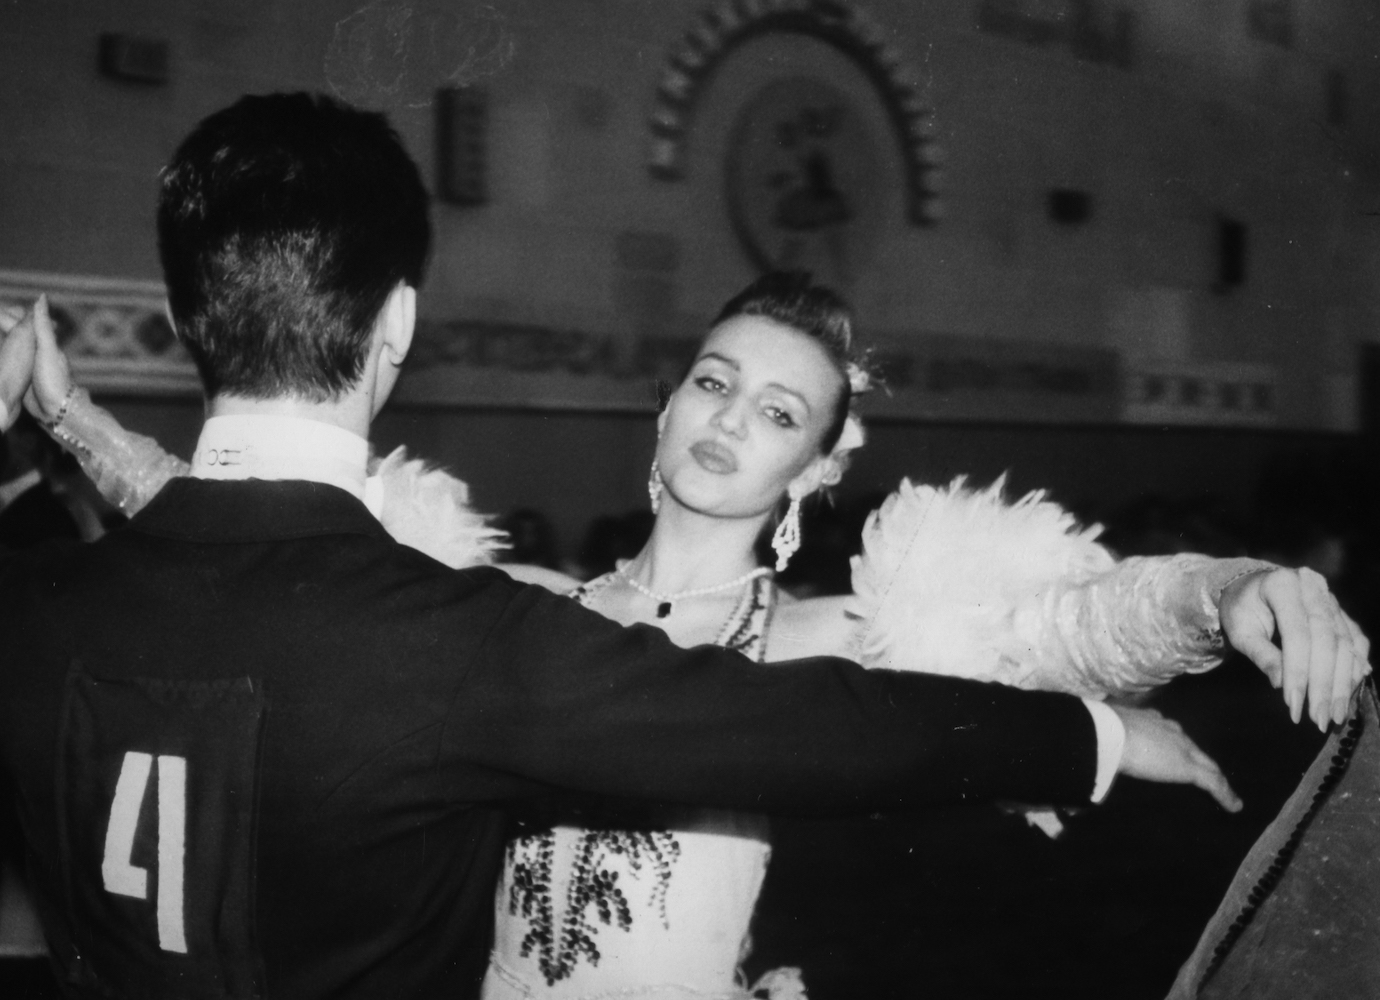 Road to Paris follows the sequin-studded ballroom odyssey of one Ukrainian family in the 1990s